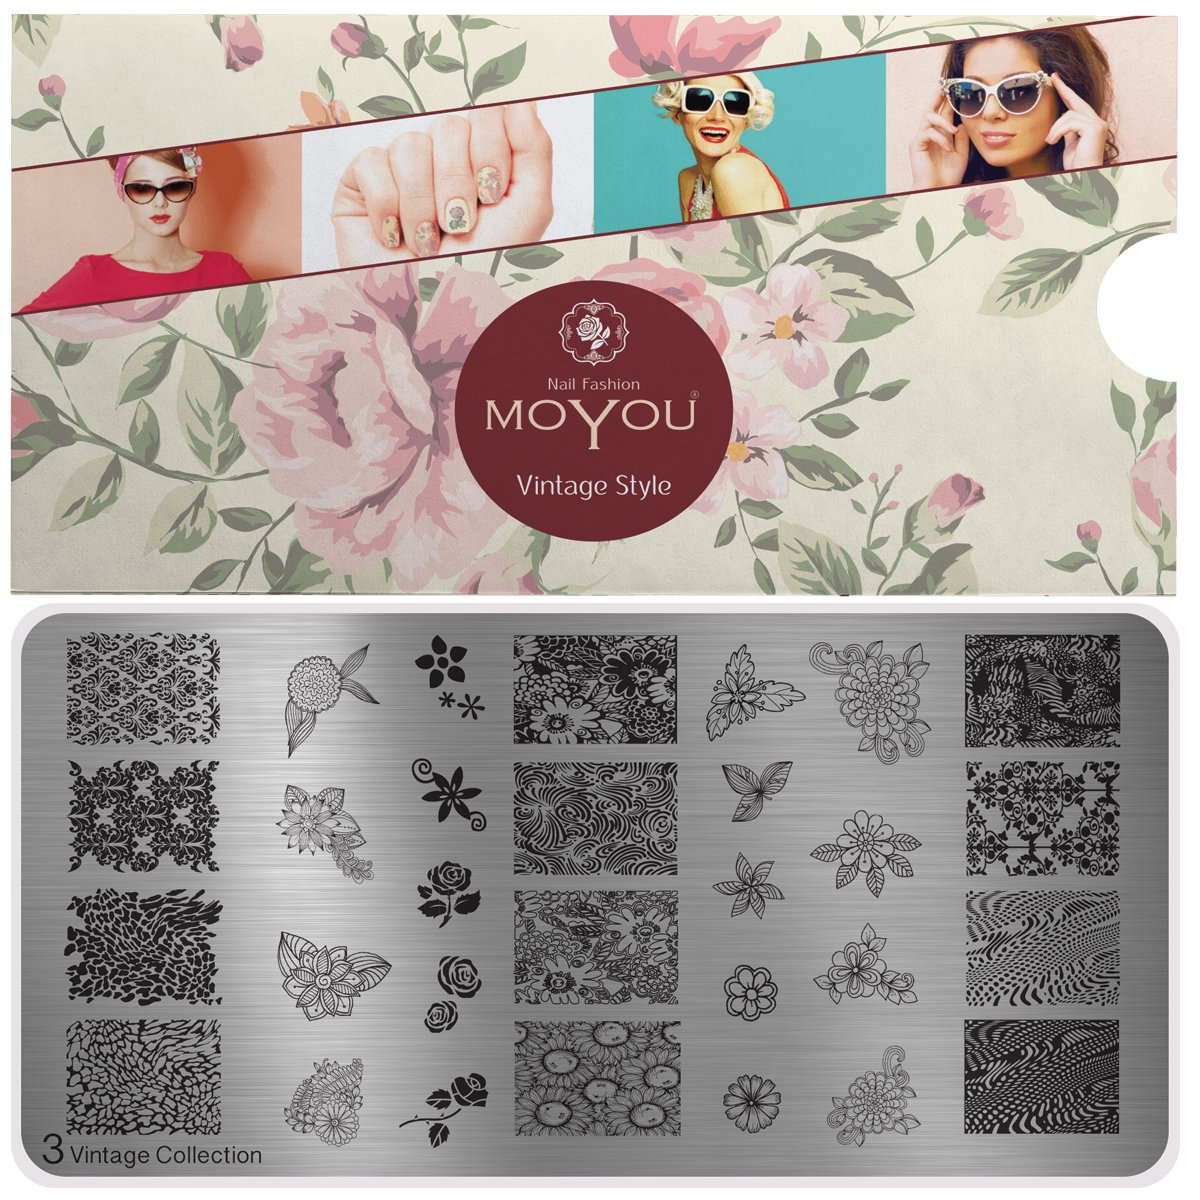 MoYou Tellern XL Vintage Collection 3, Florale Designs MoYou Nails